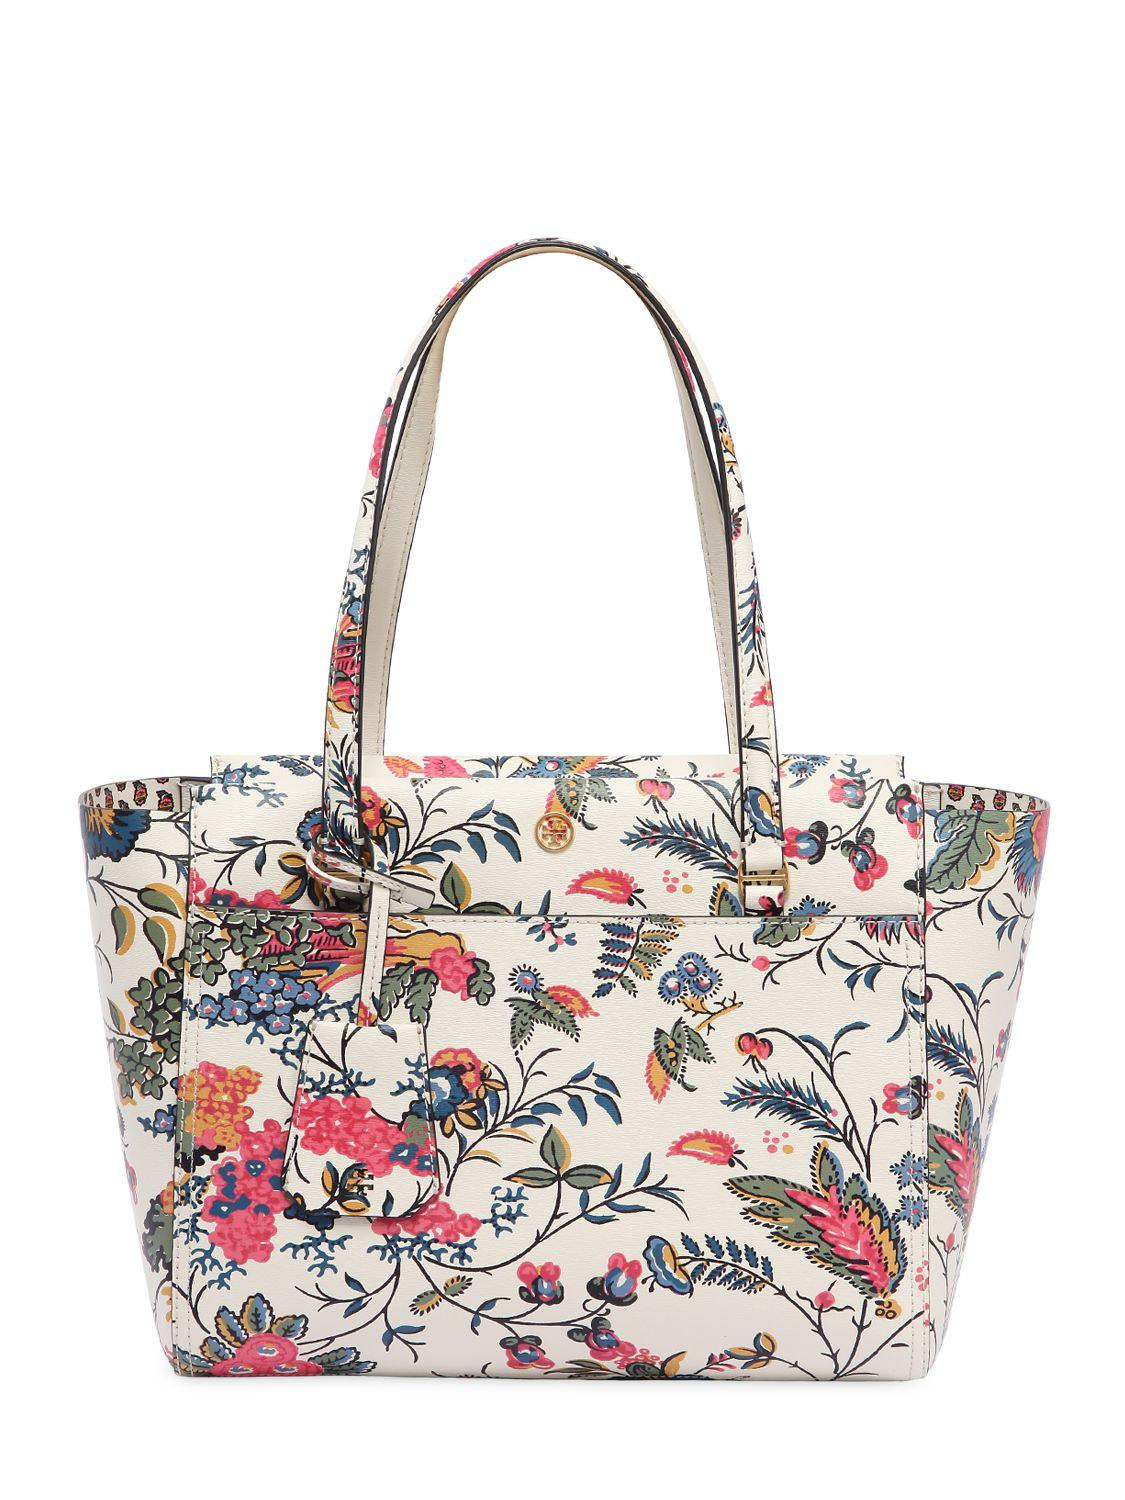 af2d3ed5c12 Tory Burch Small Parker Floral Printed Leather Tote - Lyst